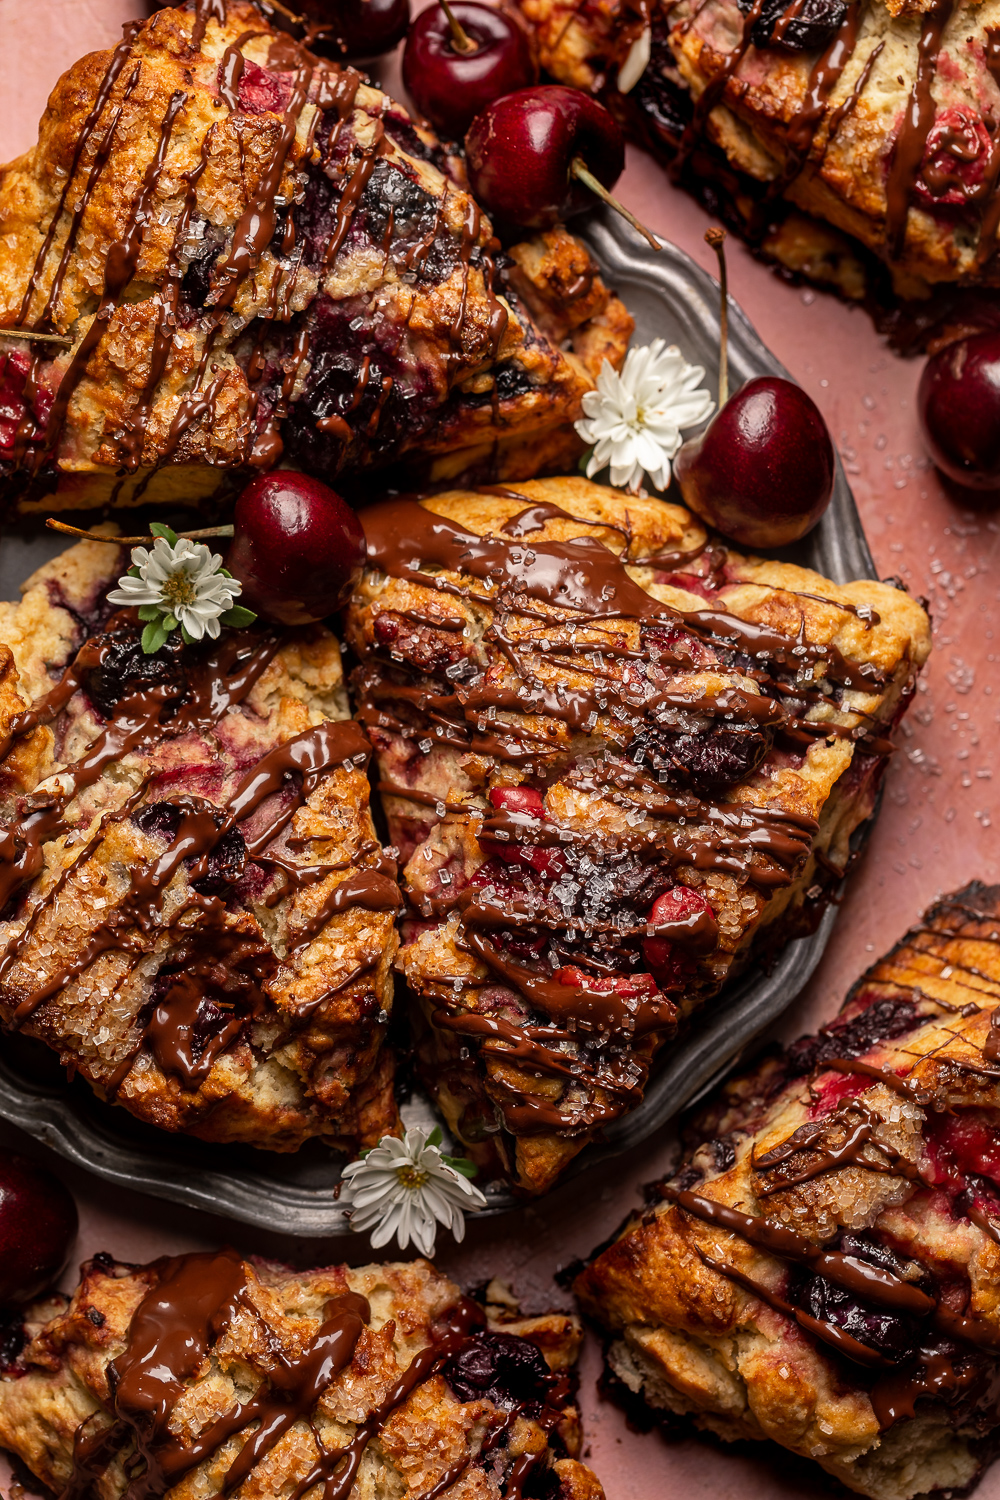 Golden brown, loaded with juicy cherries, and drizzled with dark chocolate, these Chocolate Covered Cherry Scones are a total showstopper! Perfect for breakfast or brunch and so good with a cup of coffee! For an extra chocolate kick, add a 1/2 cup of mini chocolate chips!